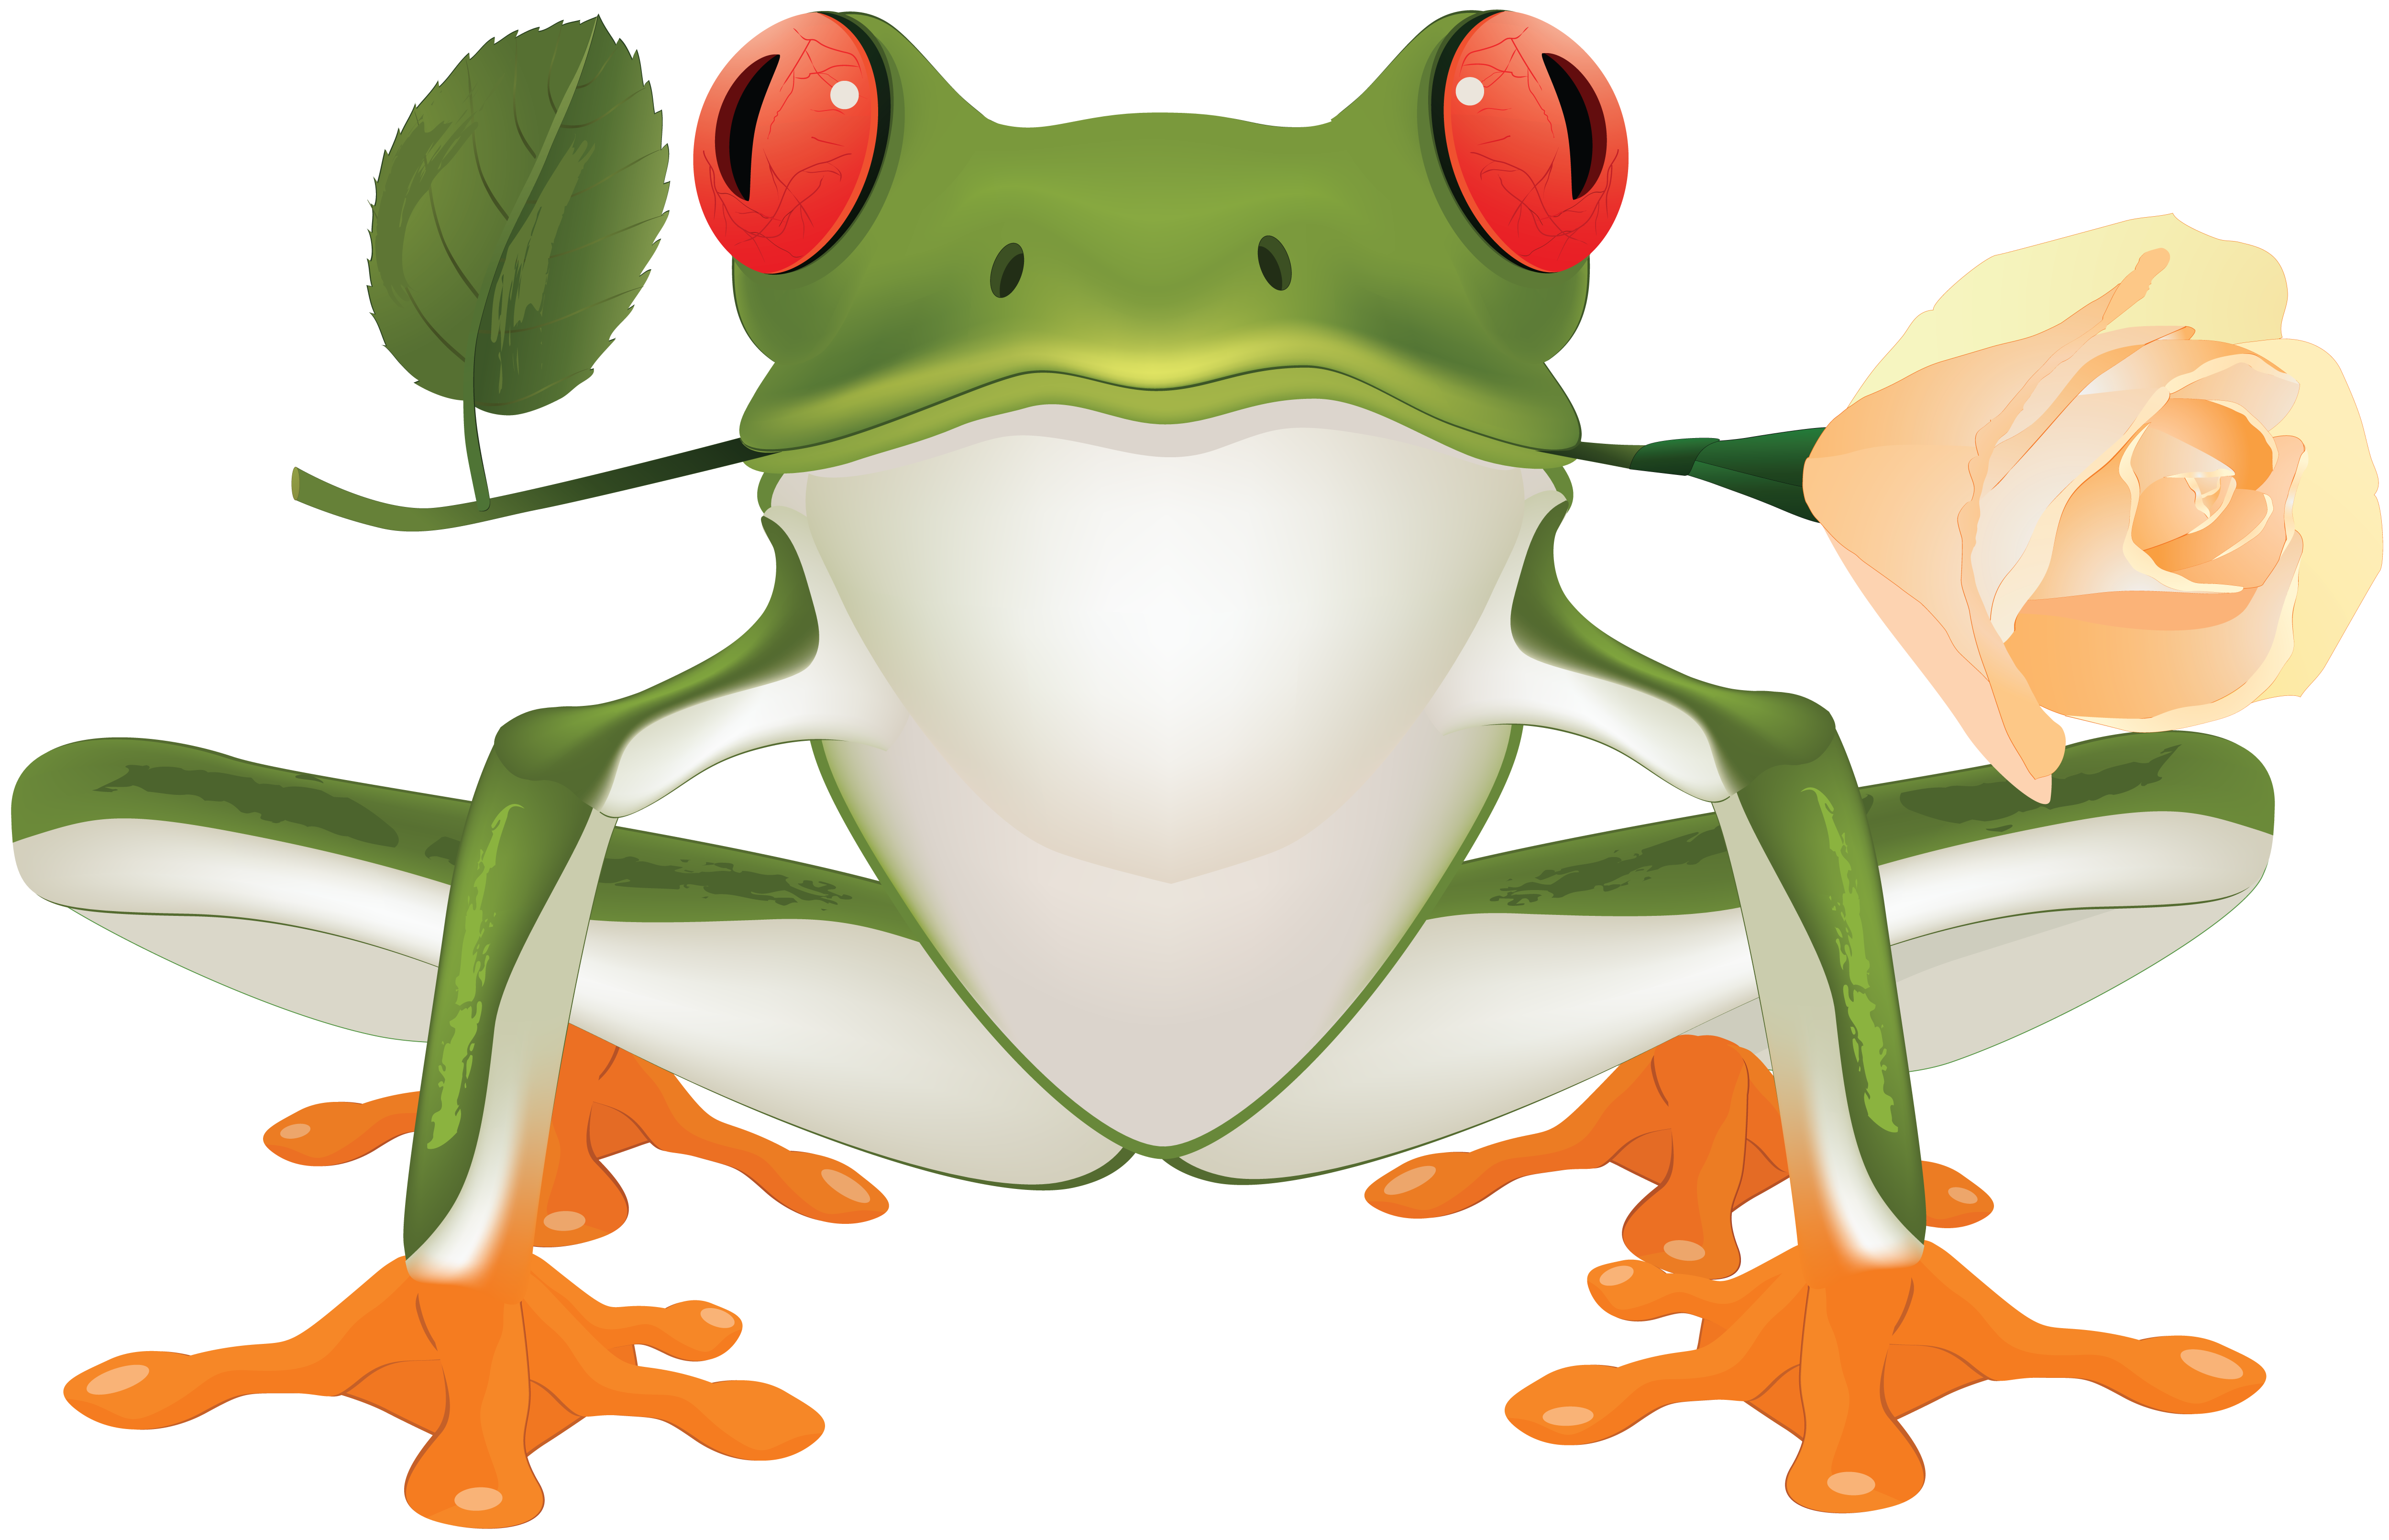 Clipart frog toad. Png image free download